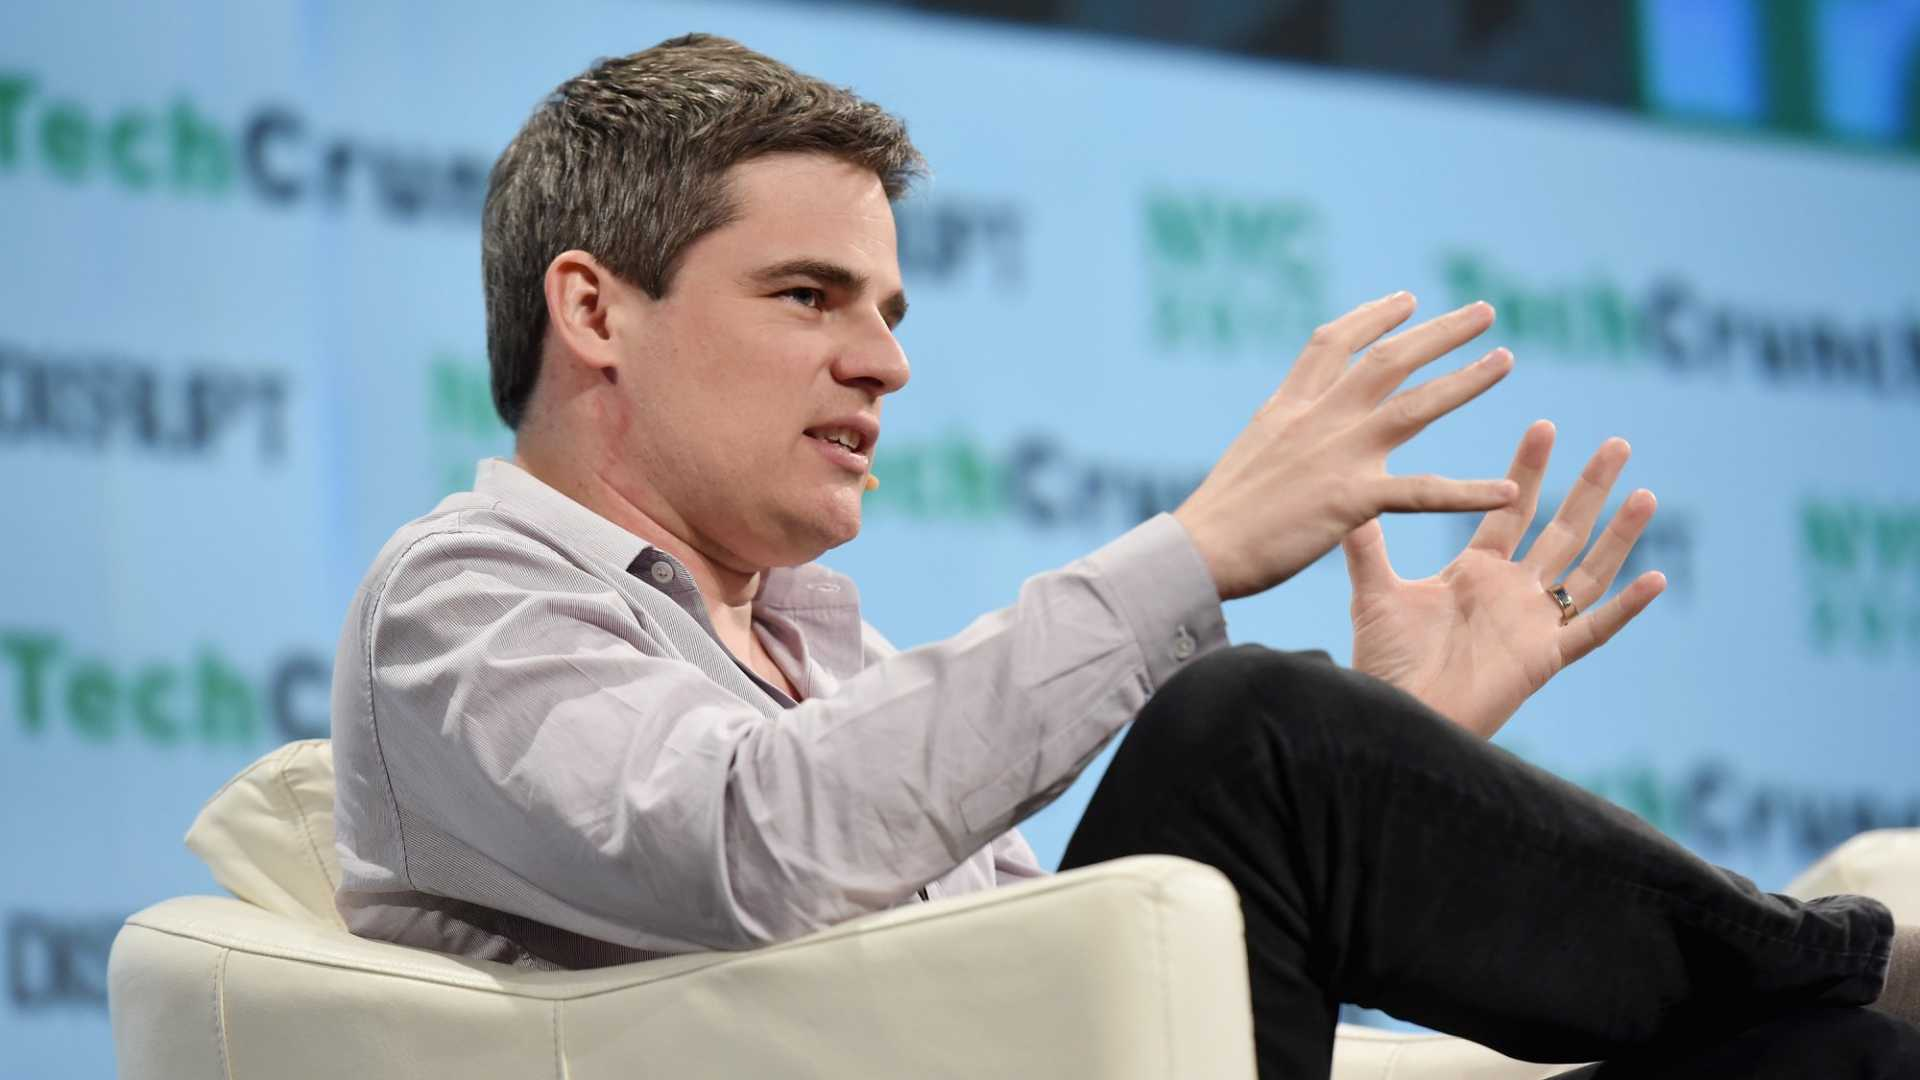 Oscar Health Raises $165 Million for Efforts to Actually Improve Health Insurance